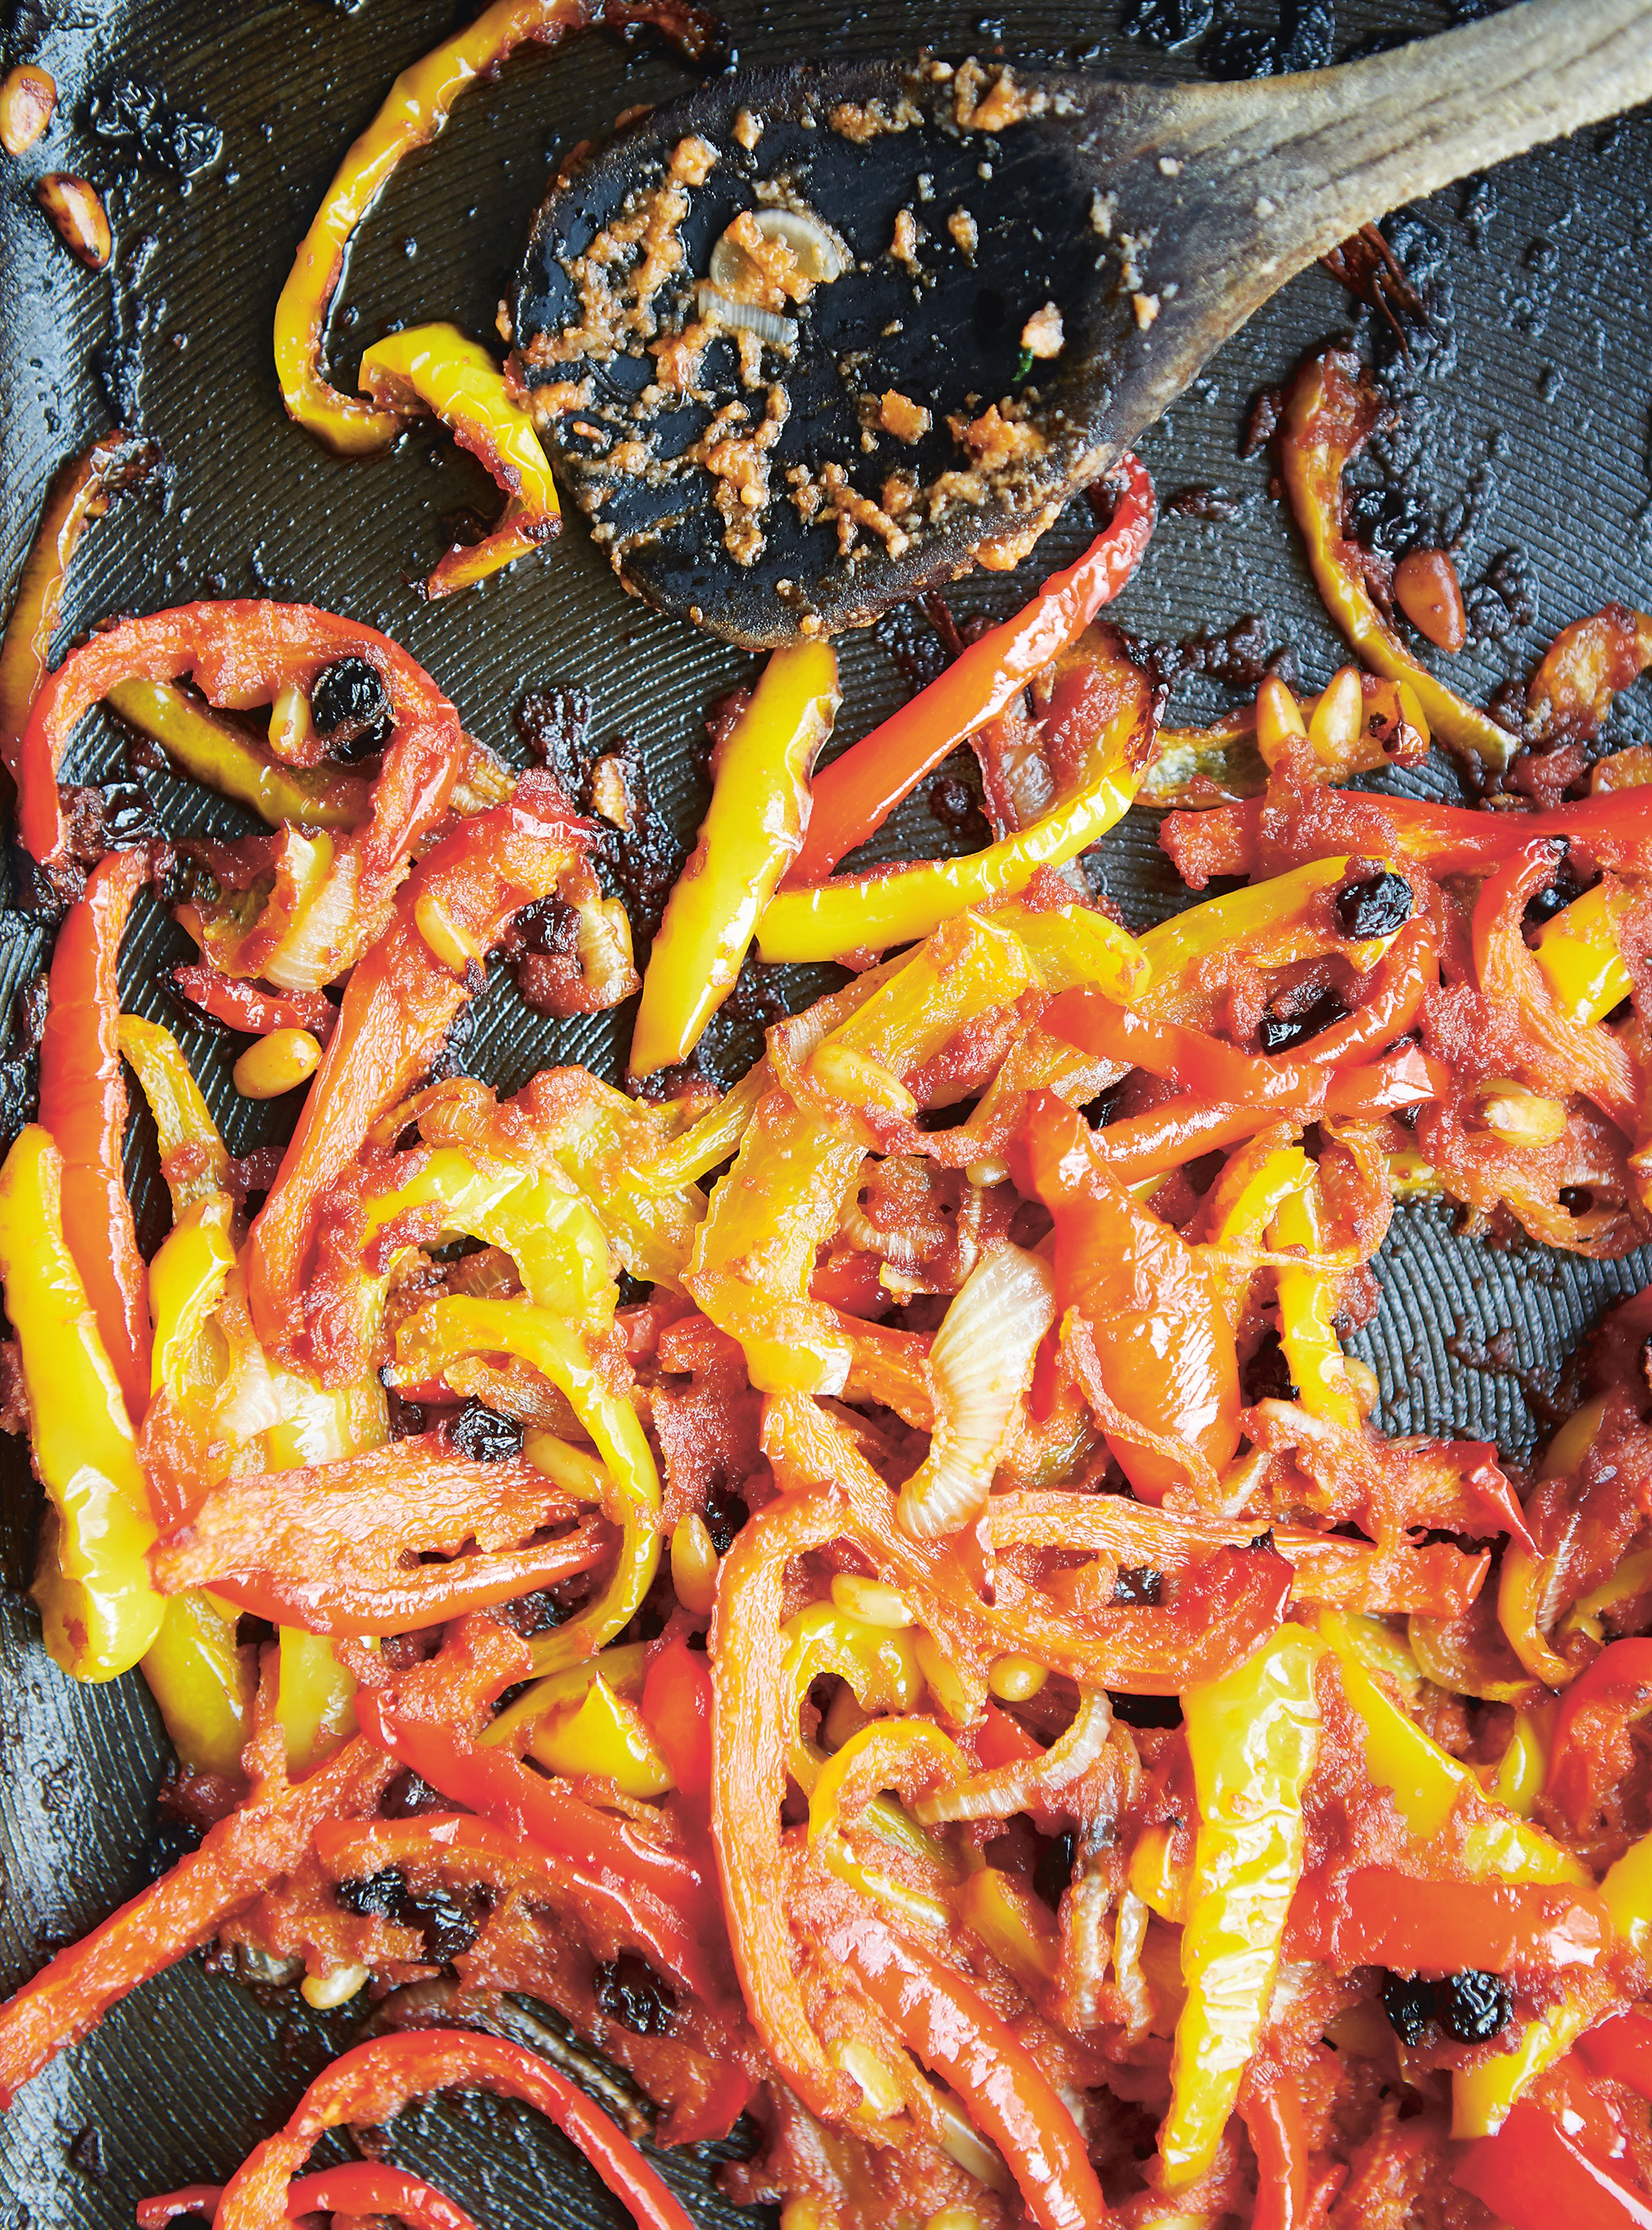 Roast peppers palermo style